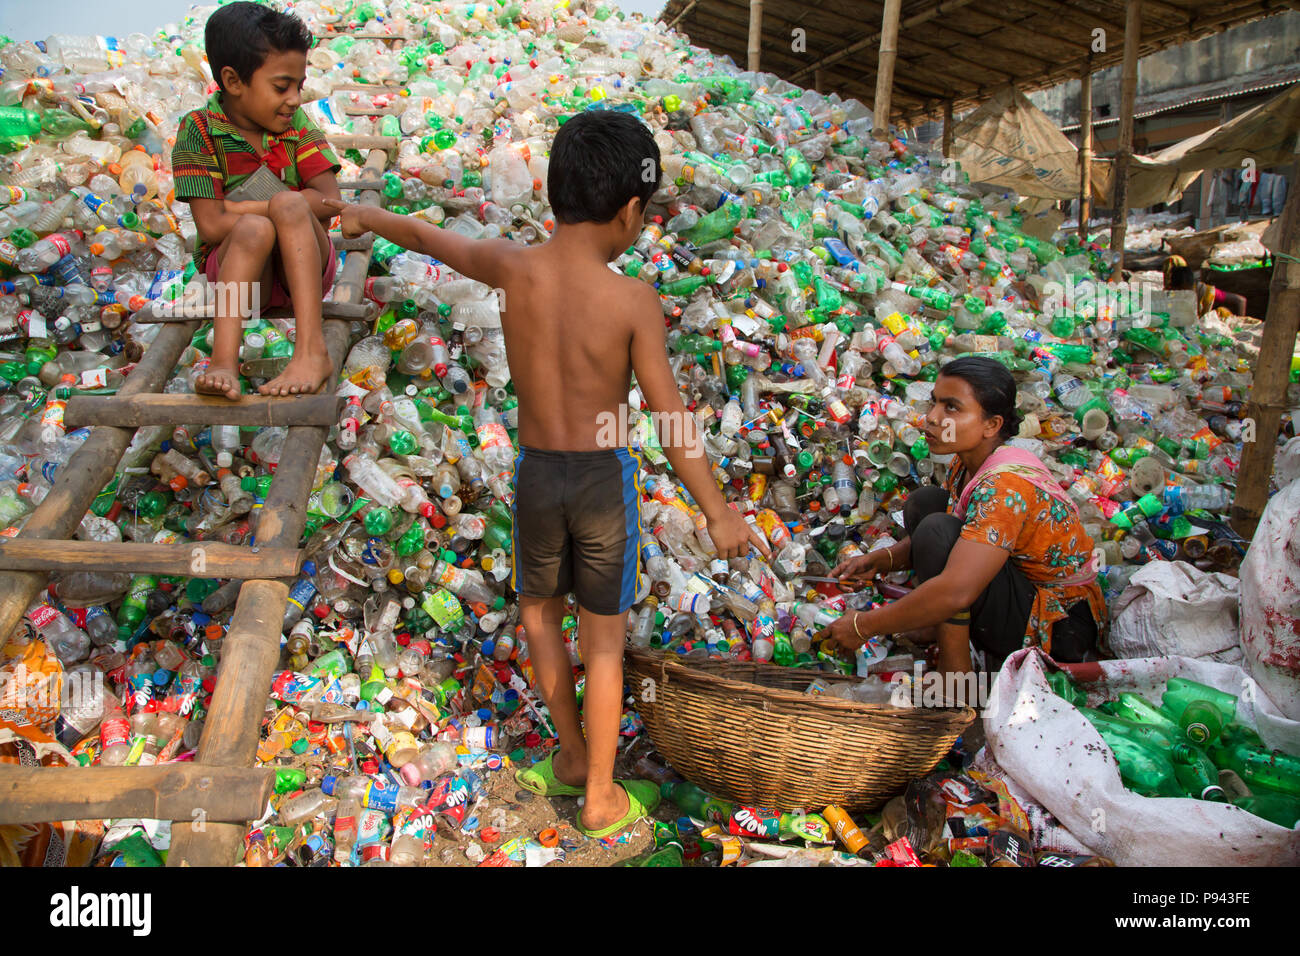 Mother working in plastic recycling factory in Hazaribagh, Dhaka, Bangladesh - Stock Image